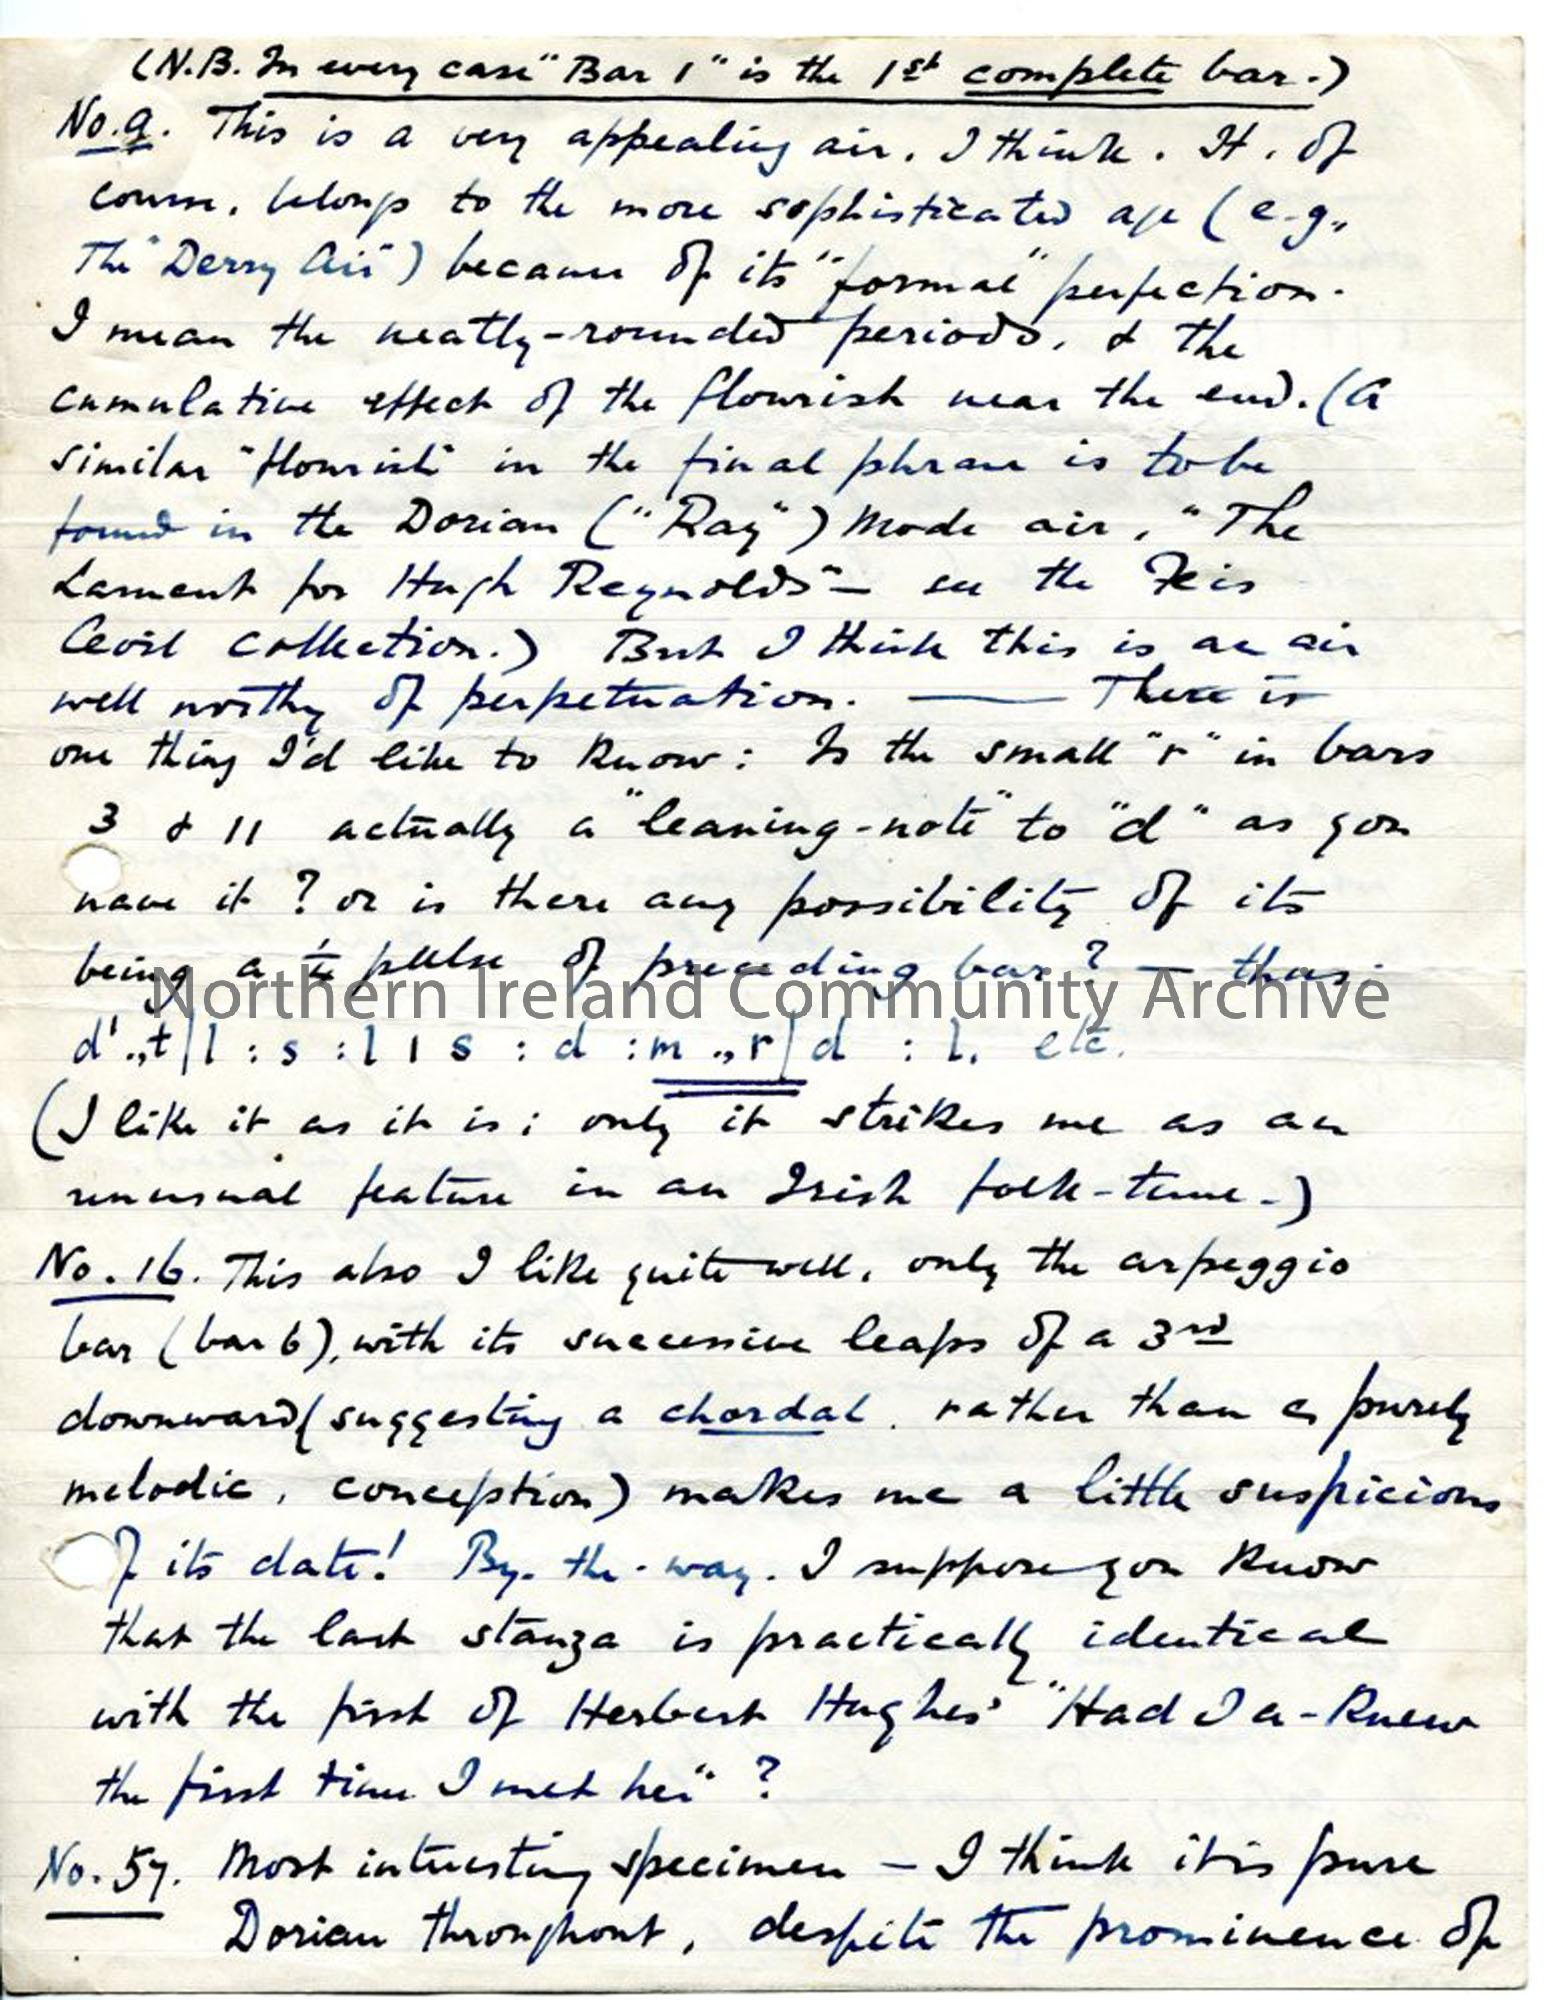 Page 3 of 12, letter from Norman Hay, 1.2.1927